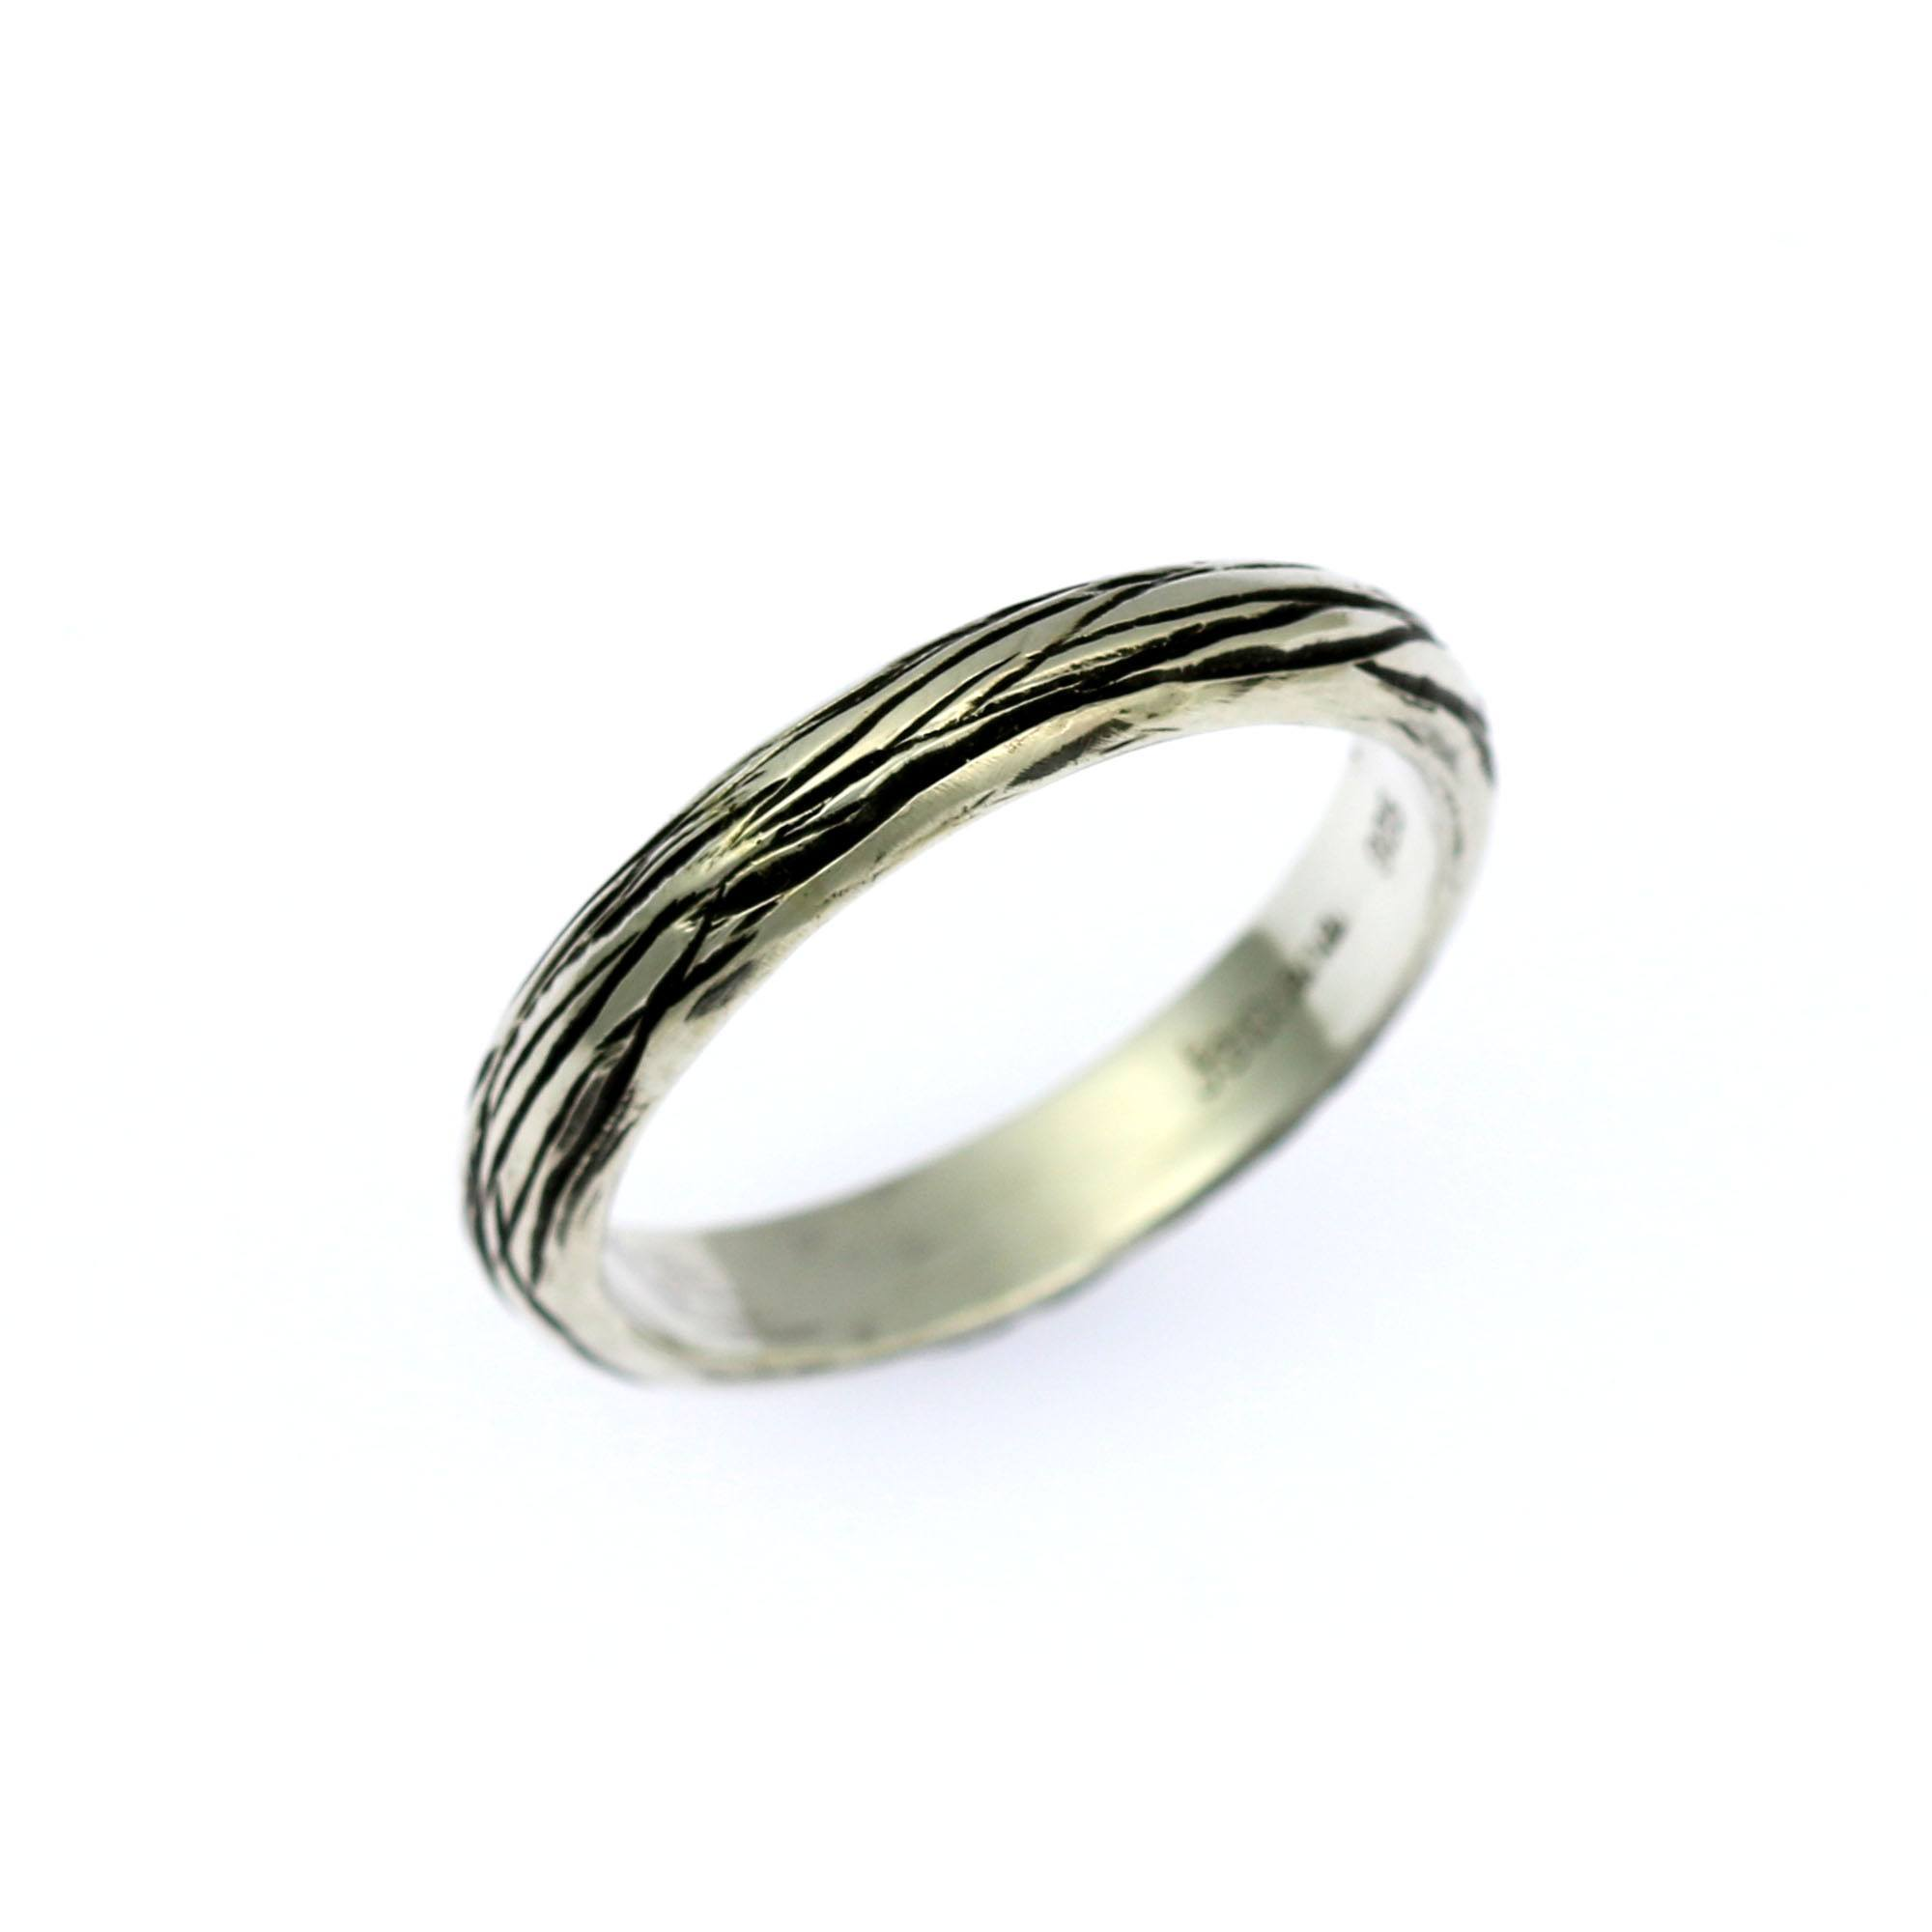 ring bands jewelry flat silver unisex sterling sstr wedding bling band